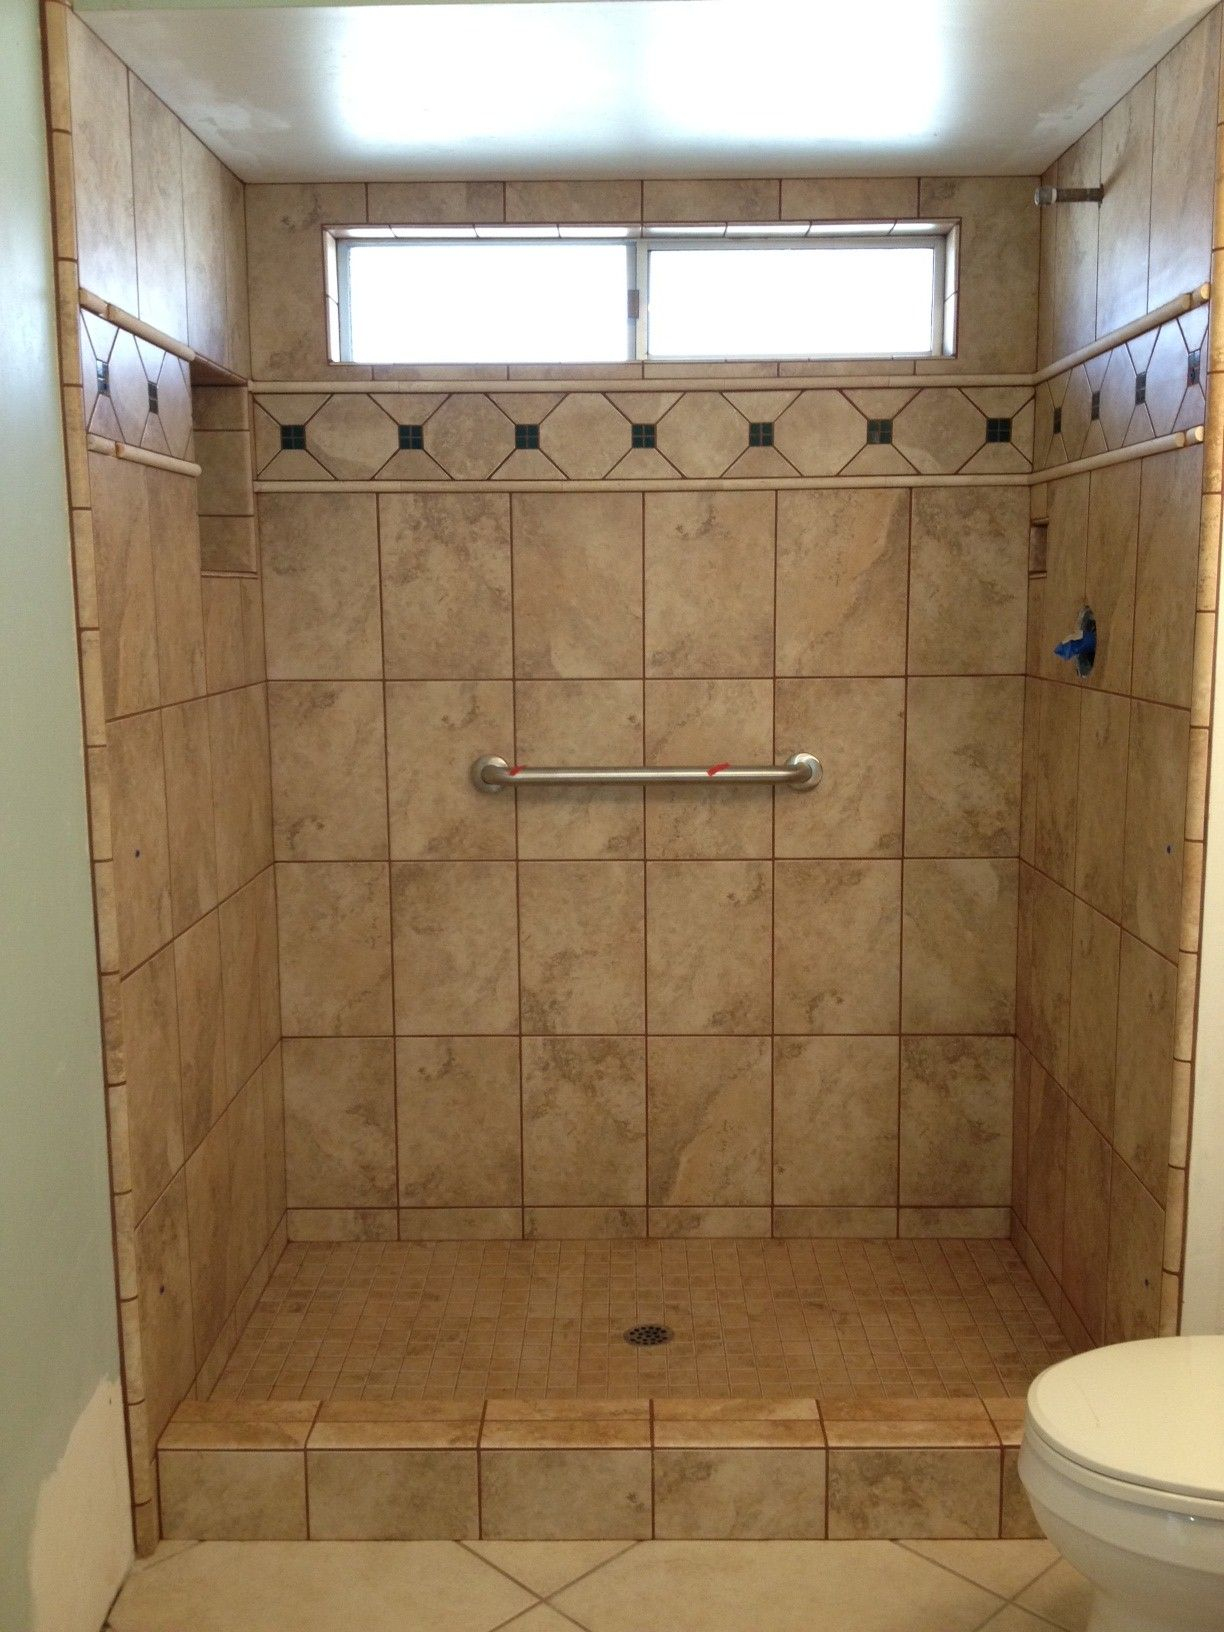 Made With Tile Shower Stalls : Photos of tiled shower stalls gallery custom